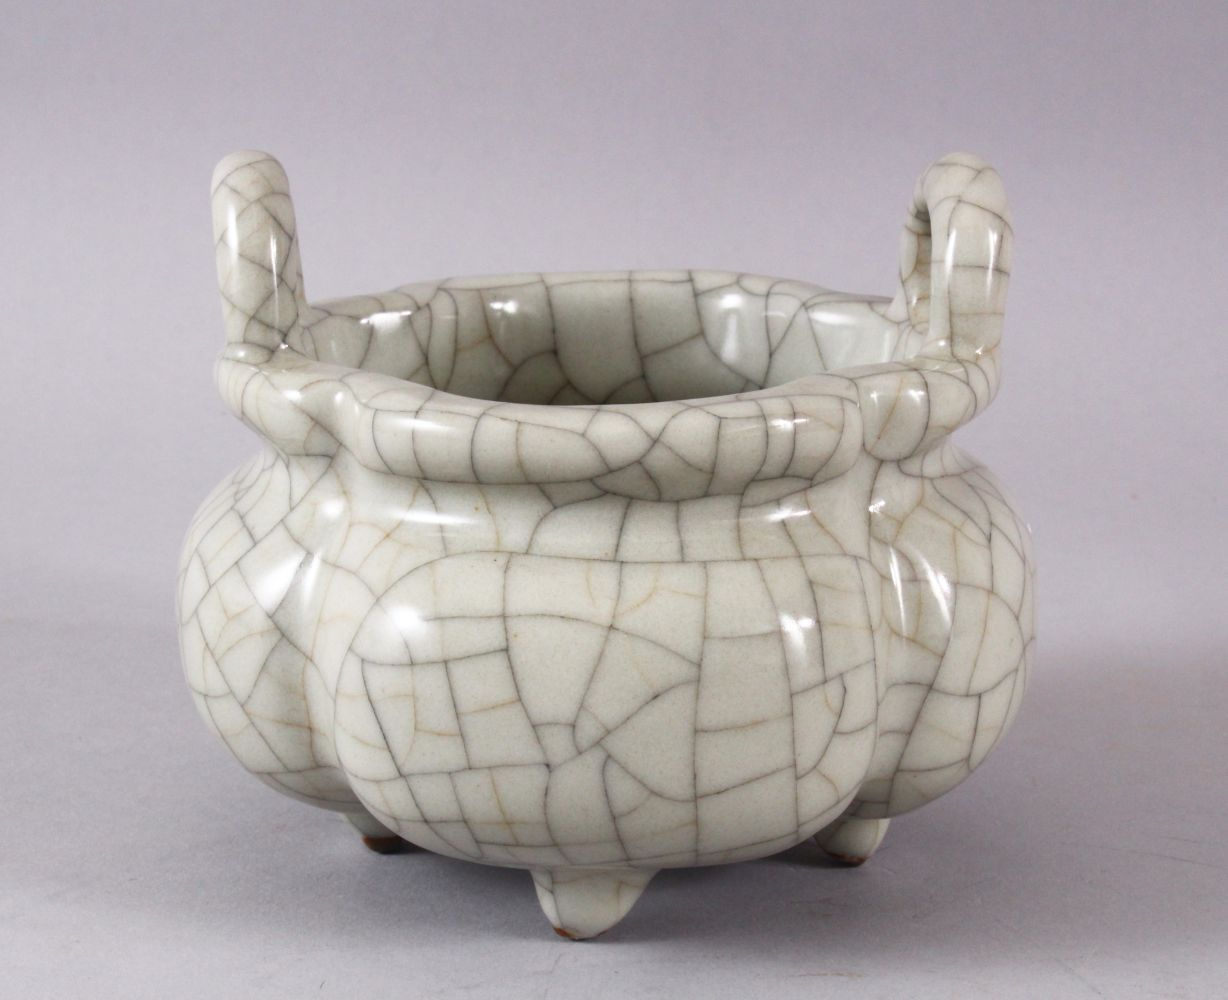 A GOOD CHINESE QUATRELOBED CRACKLE GE GLAZED TRIPOD CENSER, with twin moulded handles and tripod